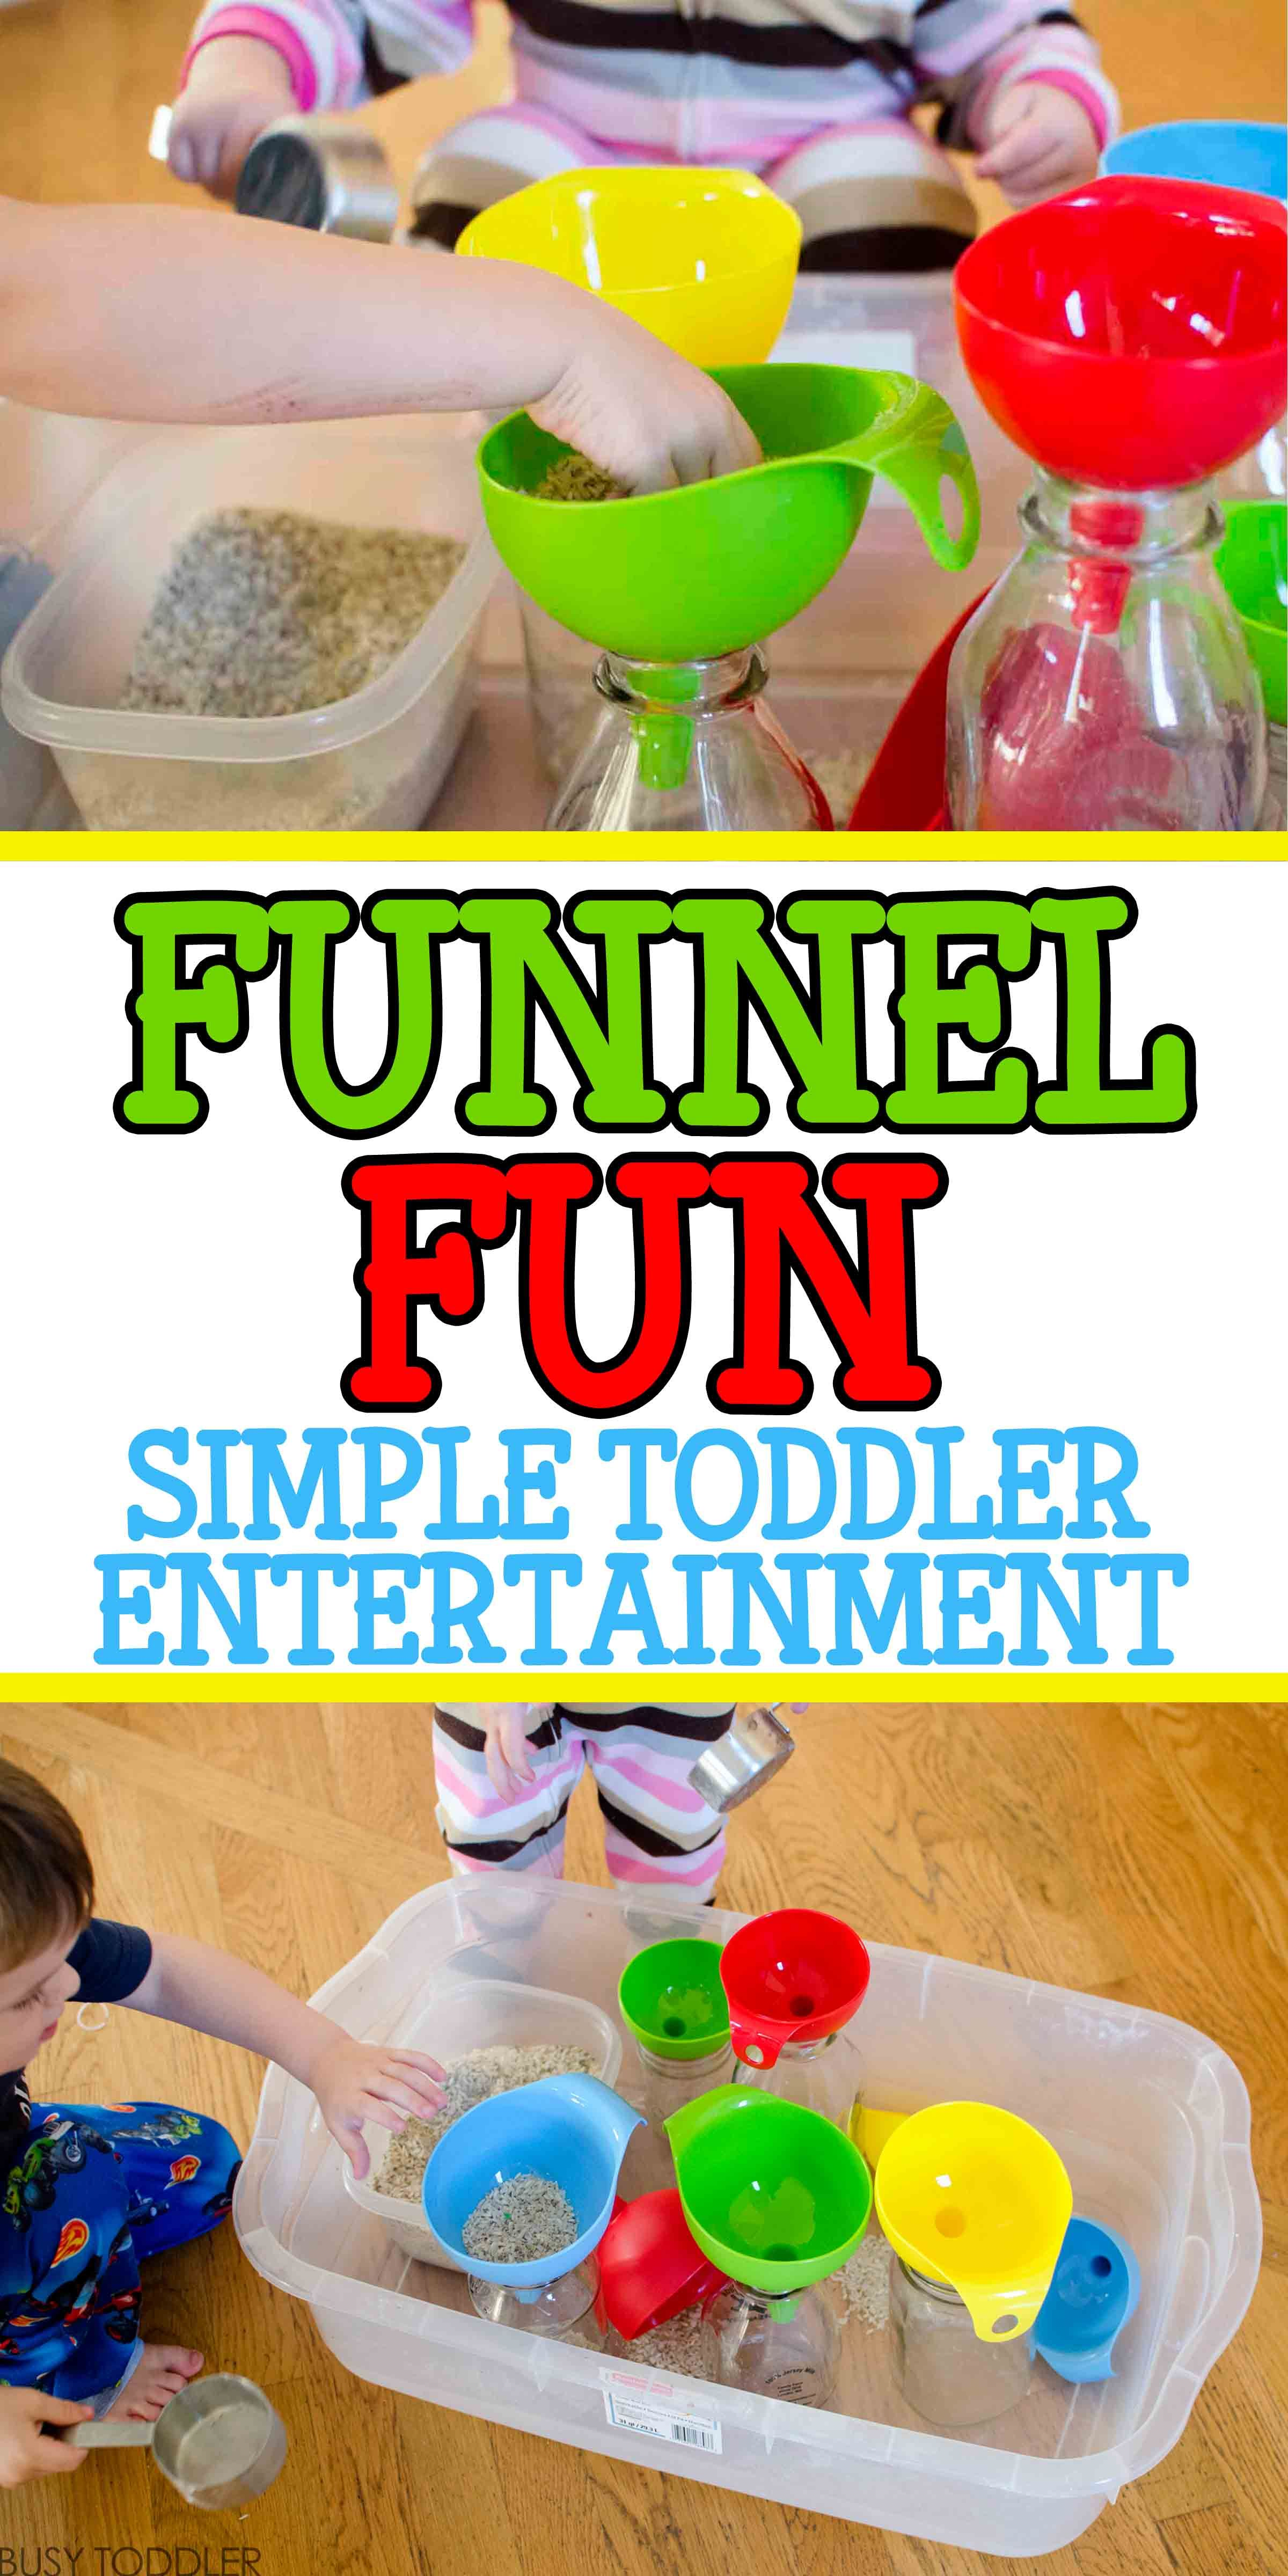 Funnel Fun Simple Toddler Entertainment